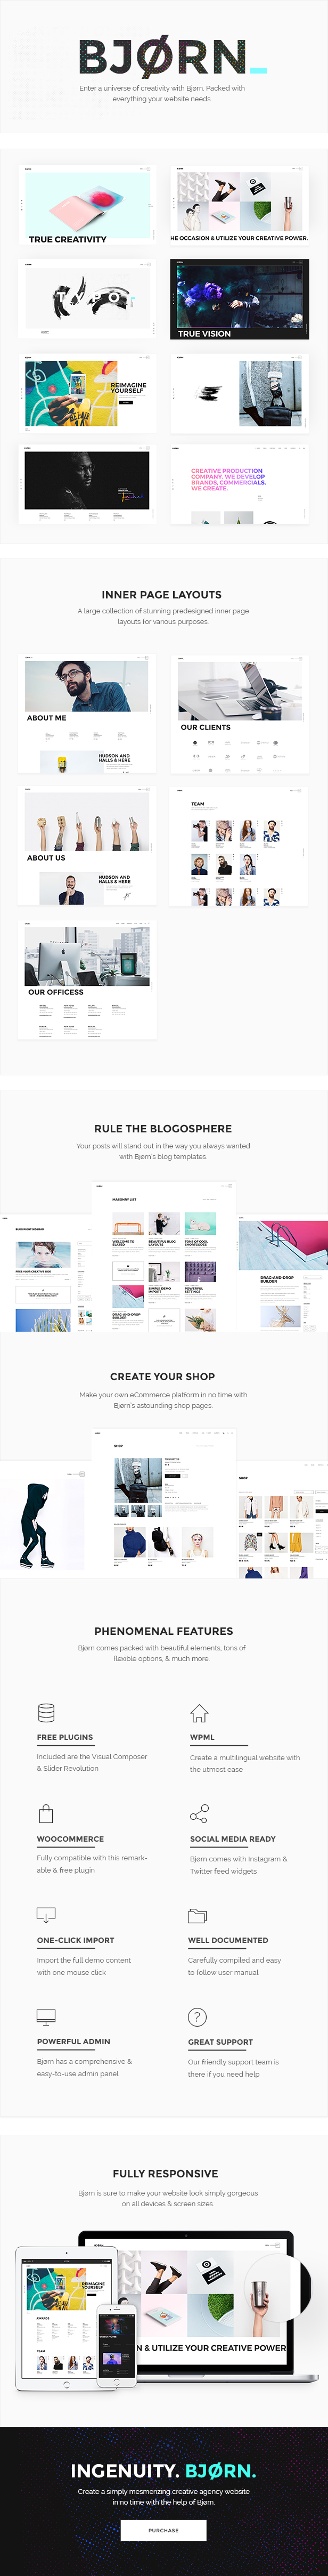 Bjorn - A Multi-Concept Theme for Freelancers and Creative Agencies - 1